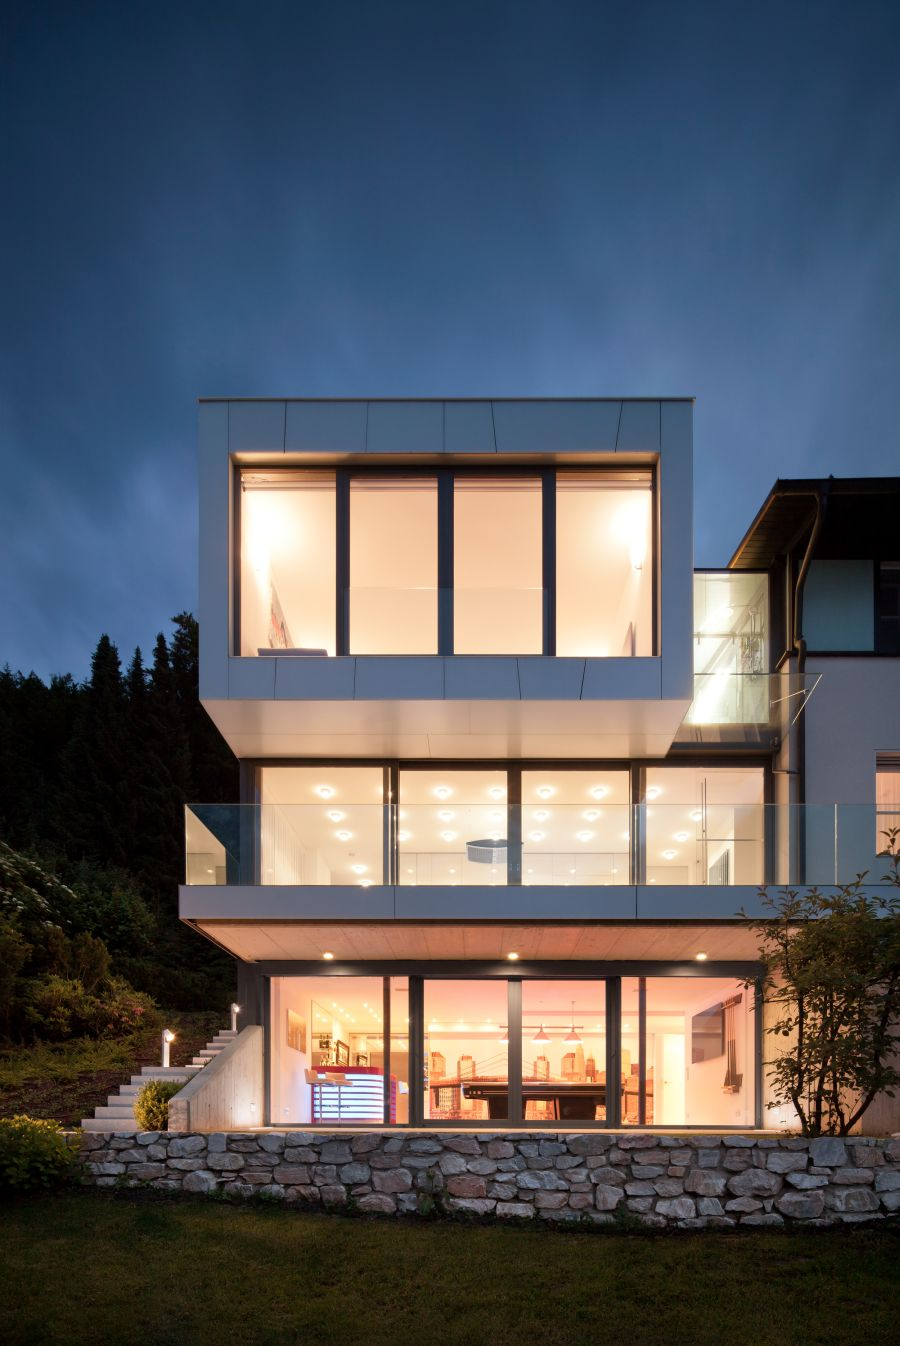 Large glass windows used to offer lake views Elegant Austrian Home Blends Lovely Lake Views With A Minimalist Interior